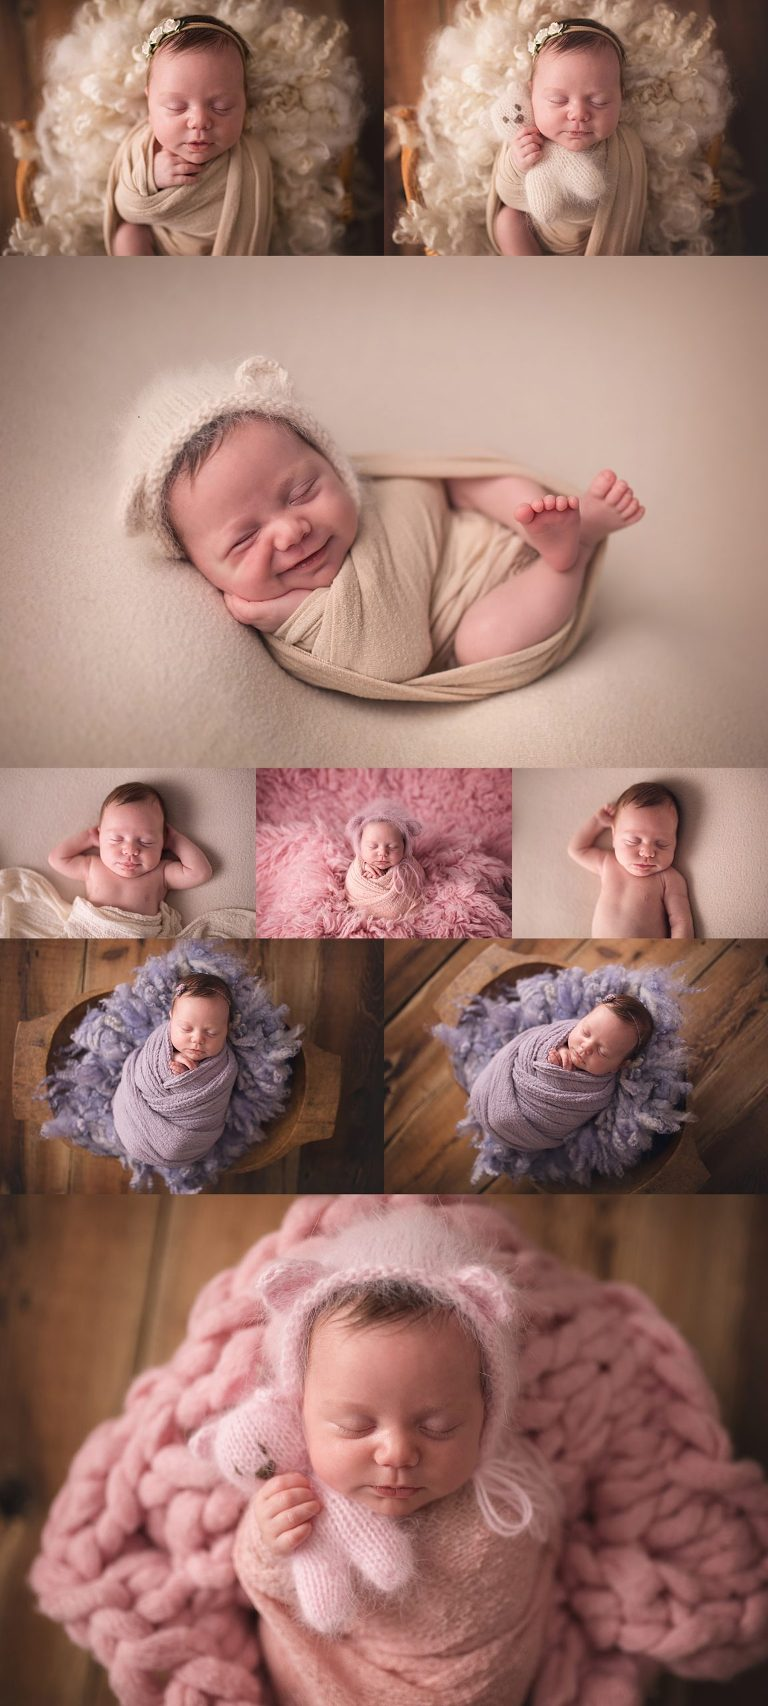 Kilworth newborn photographer with a neutral setup